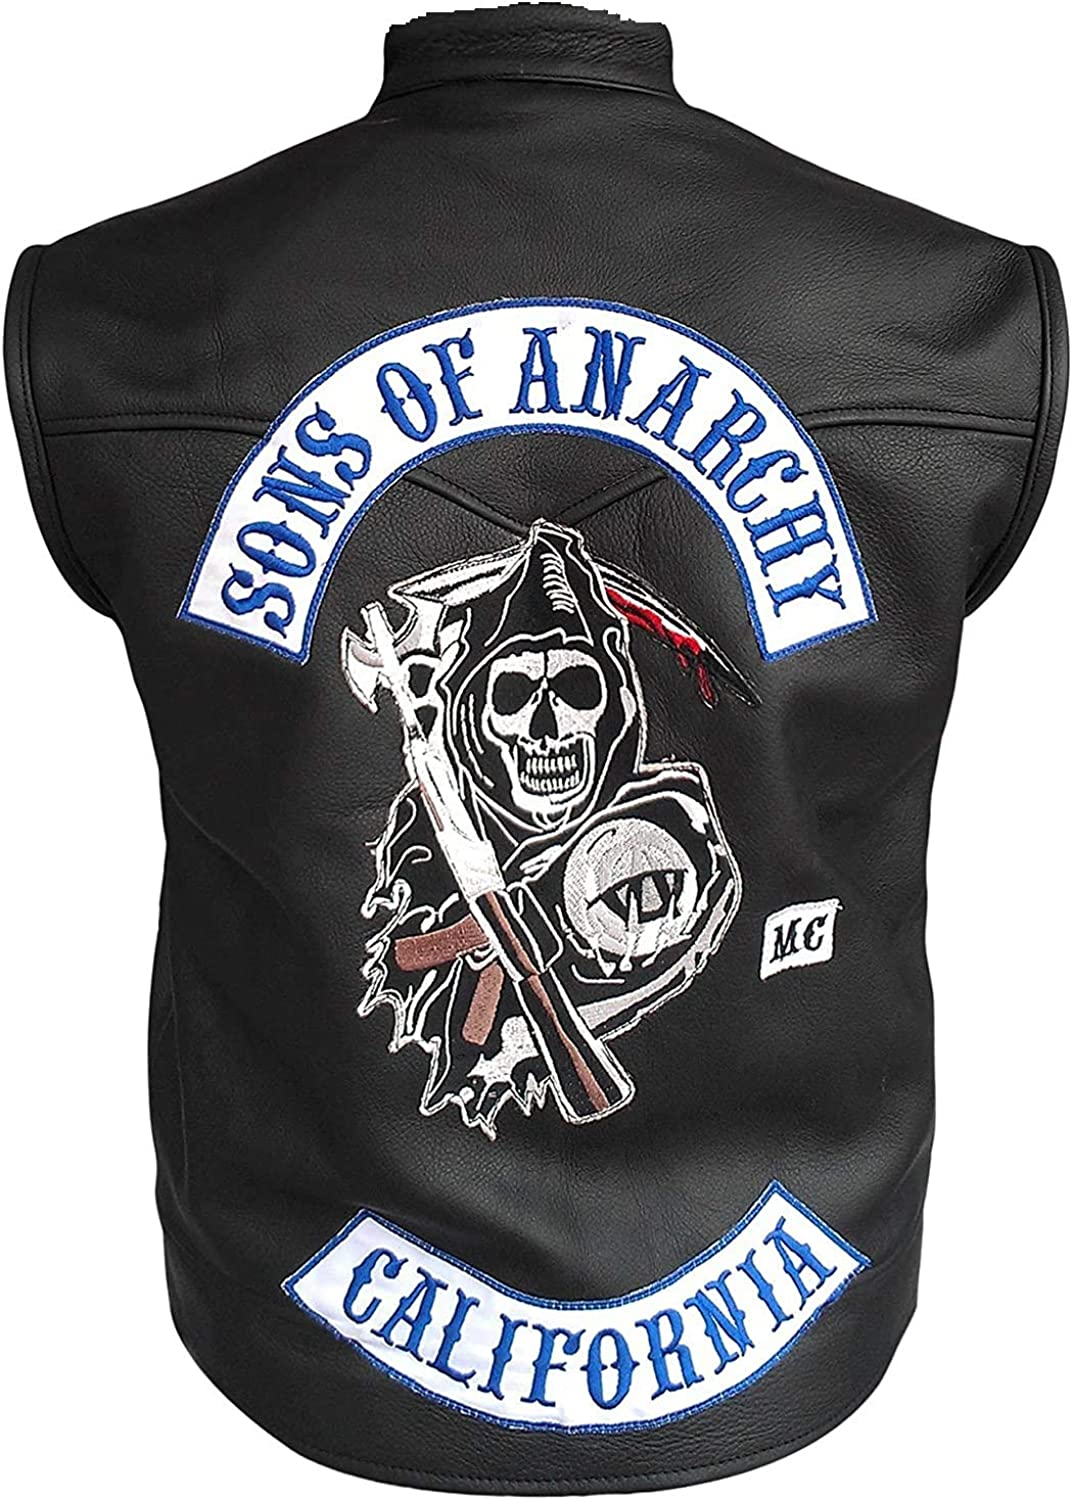 Men's SOA Sons of Anarchy Motorcycle Club Leather Vest with patches